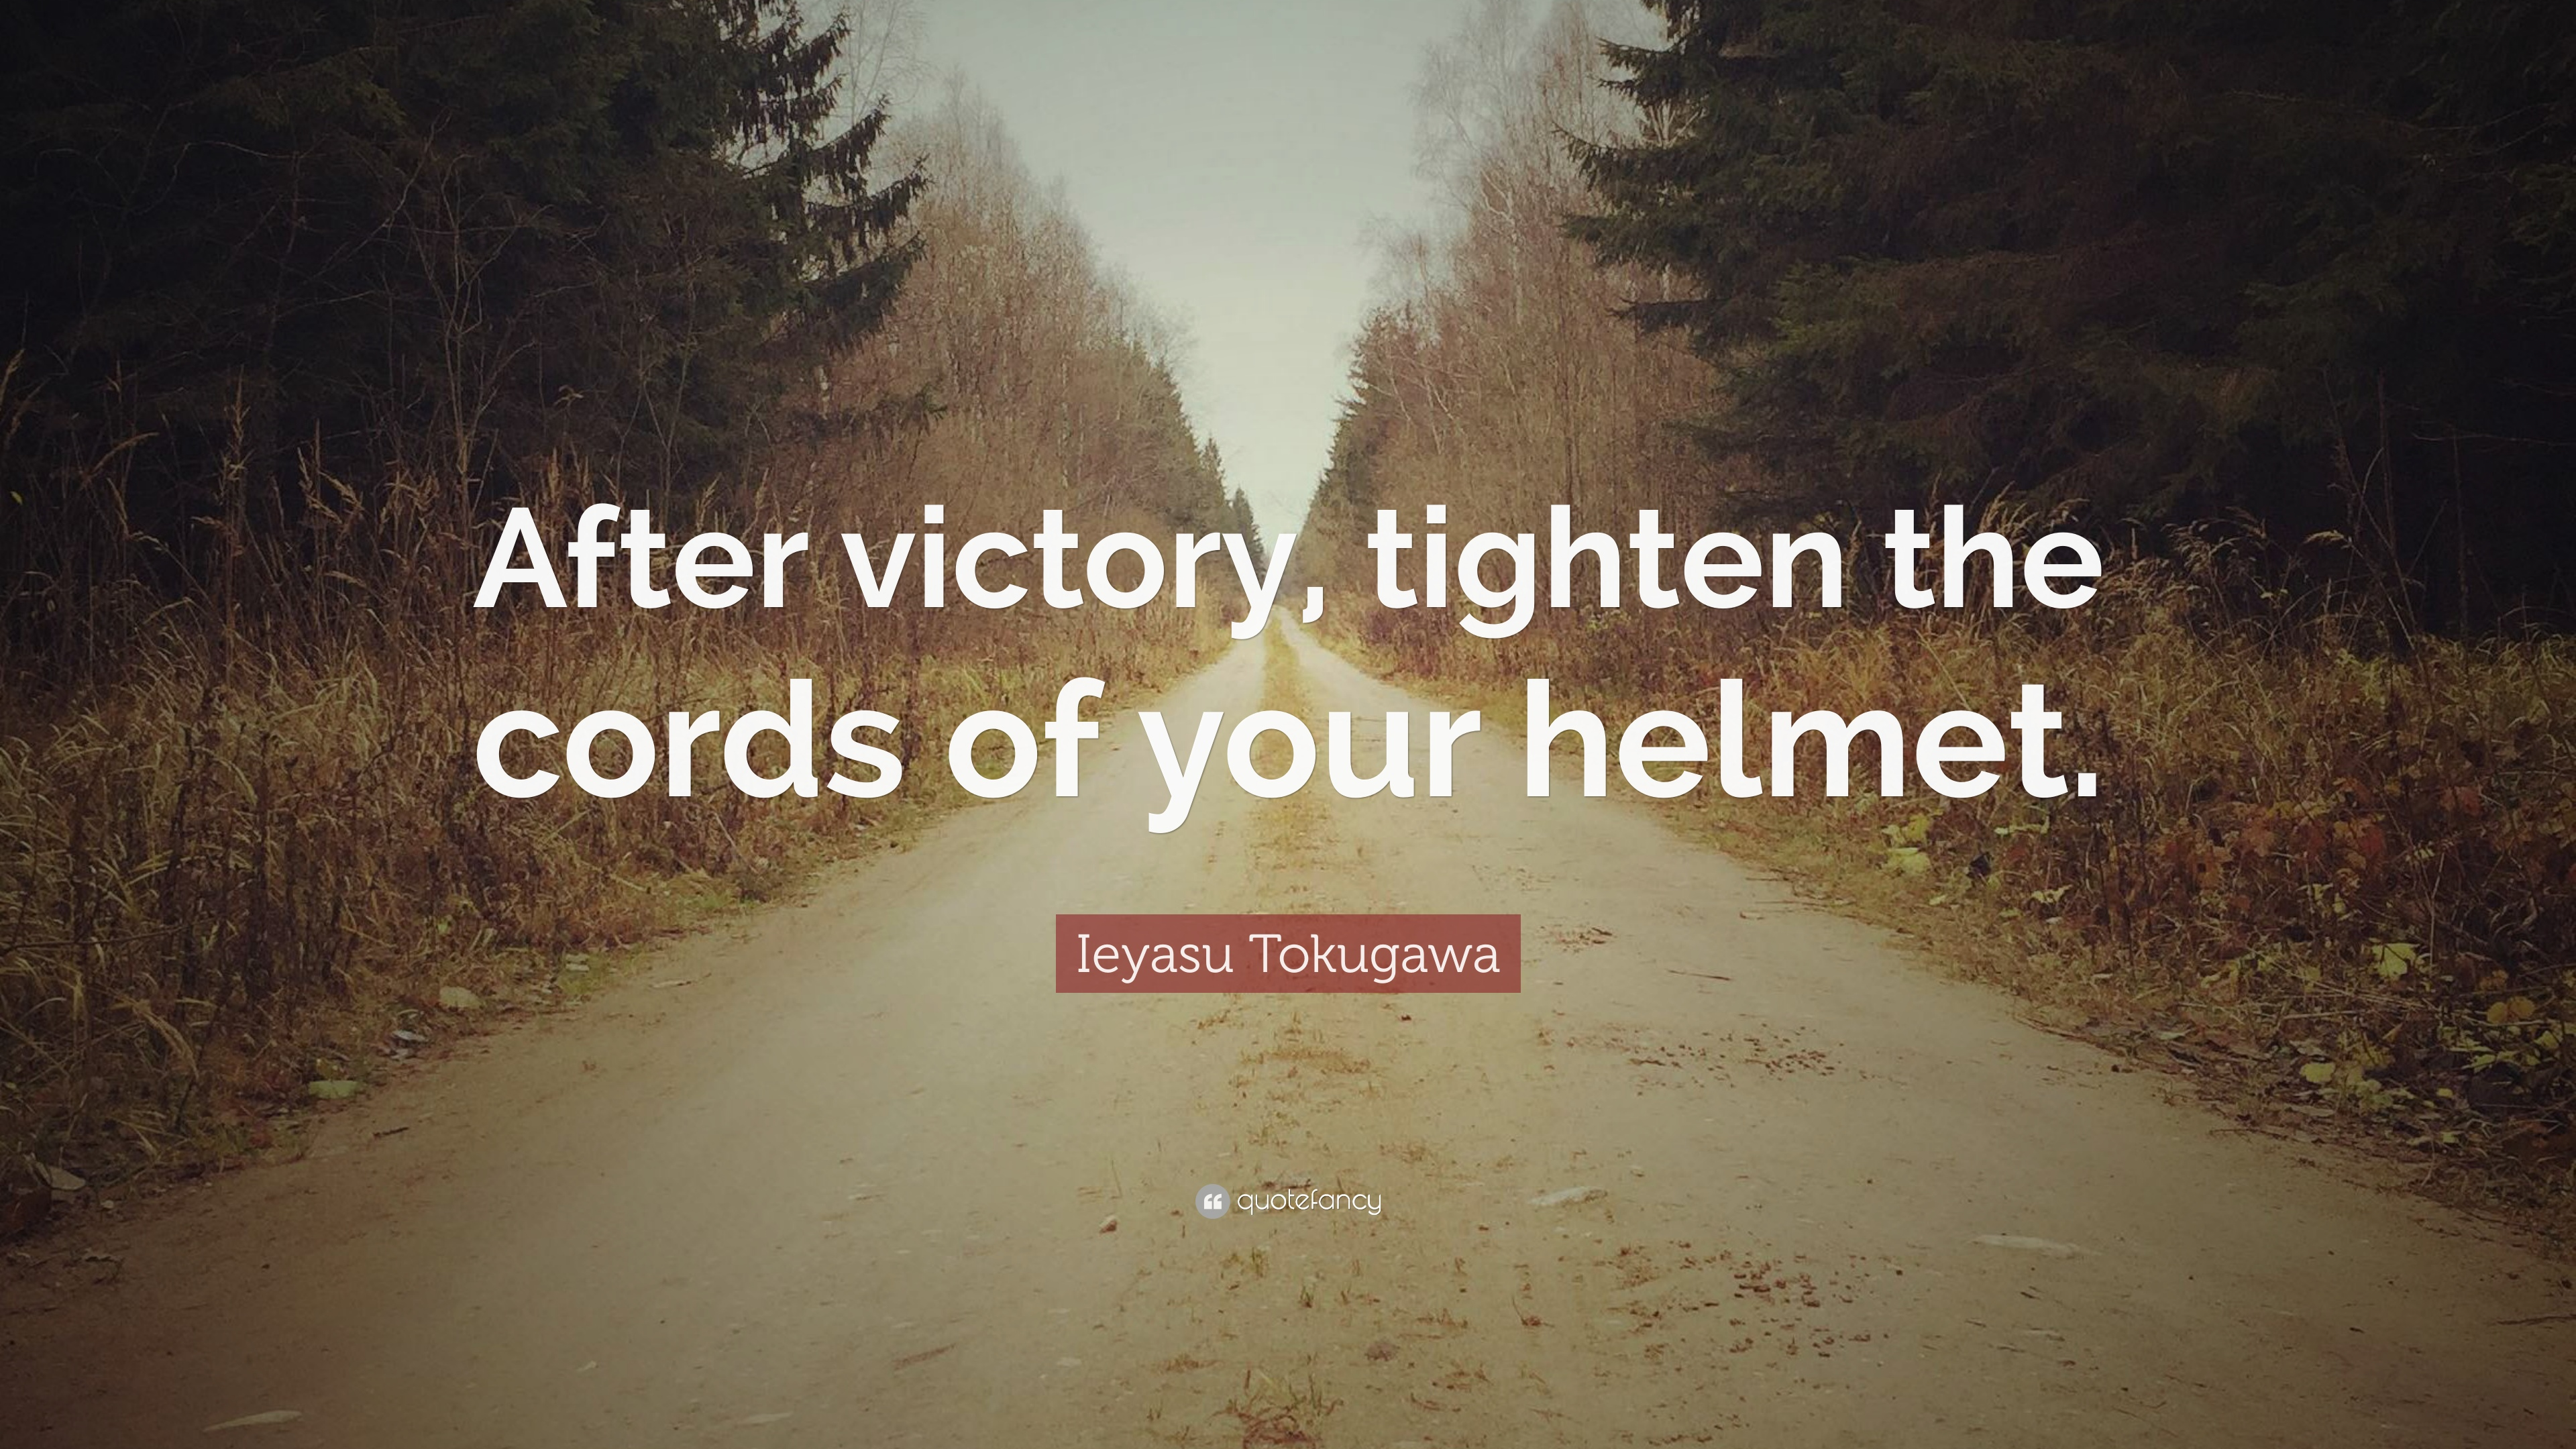 Victory quotes after victory tighten the cords of your helmet